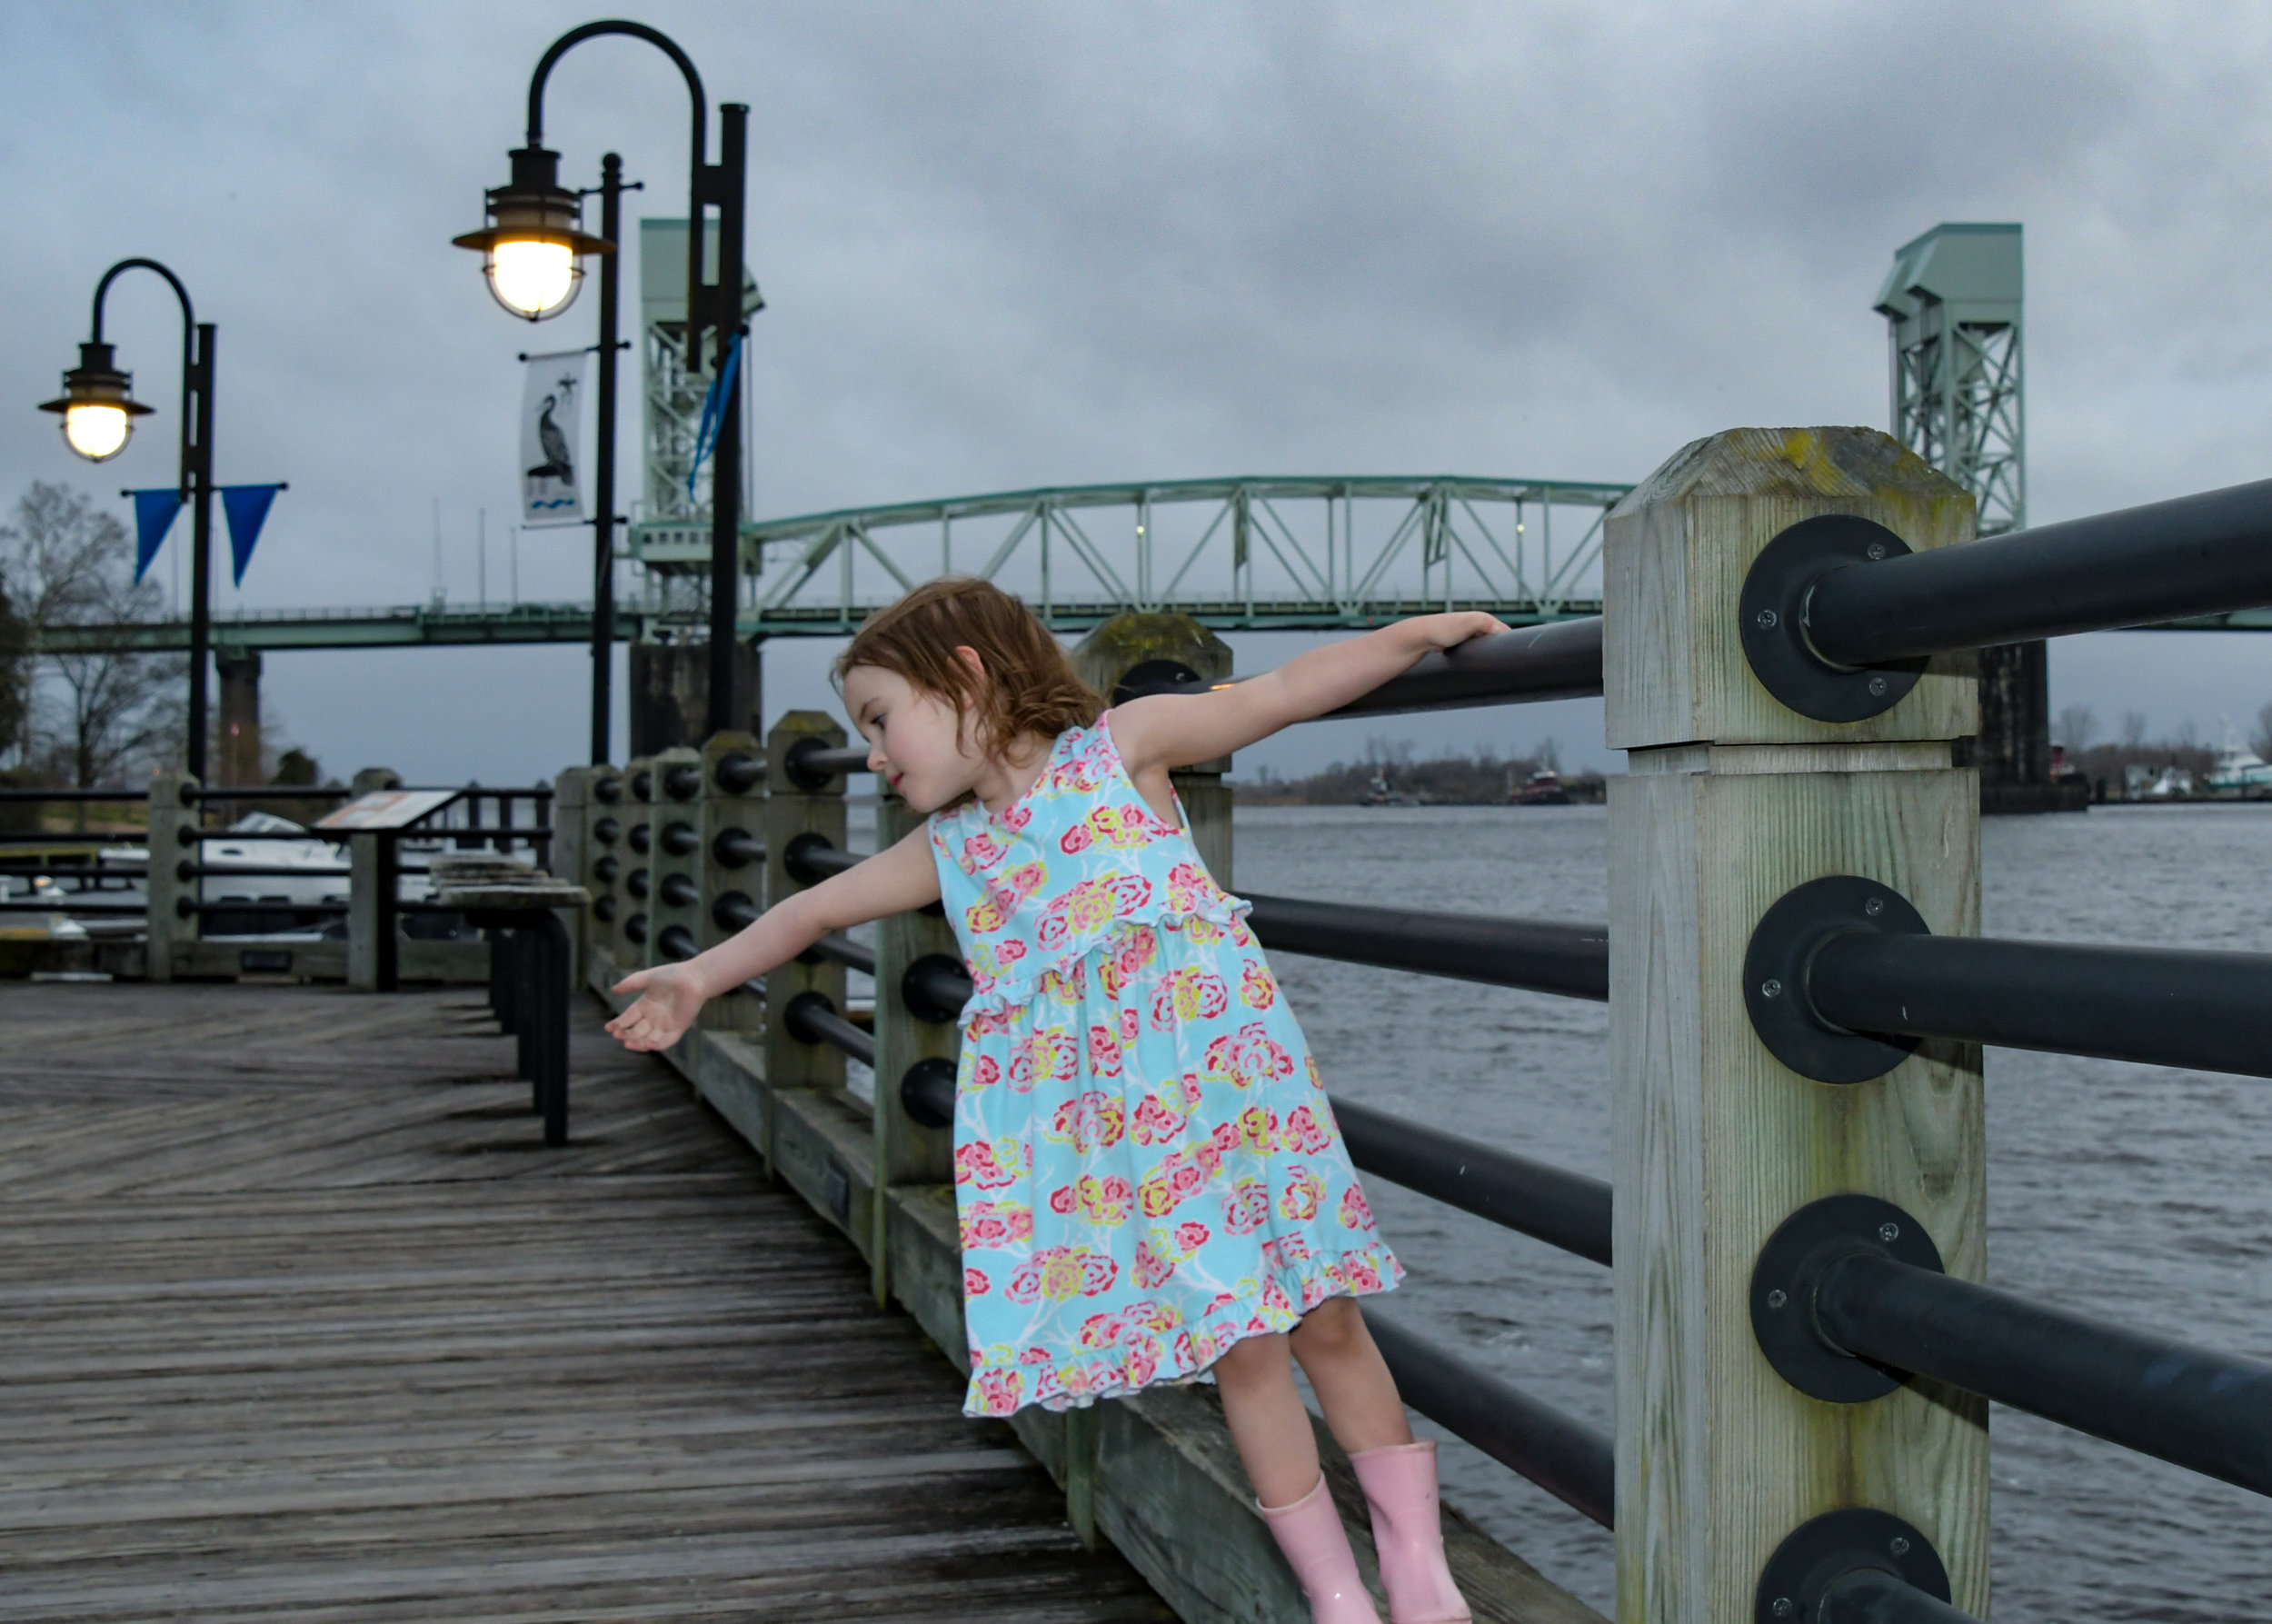 - Playing down by the river in downtown Wilmington, NC.